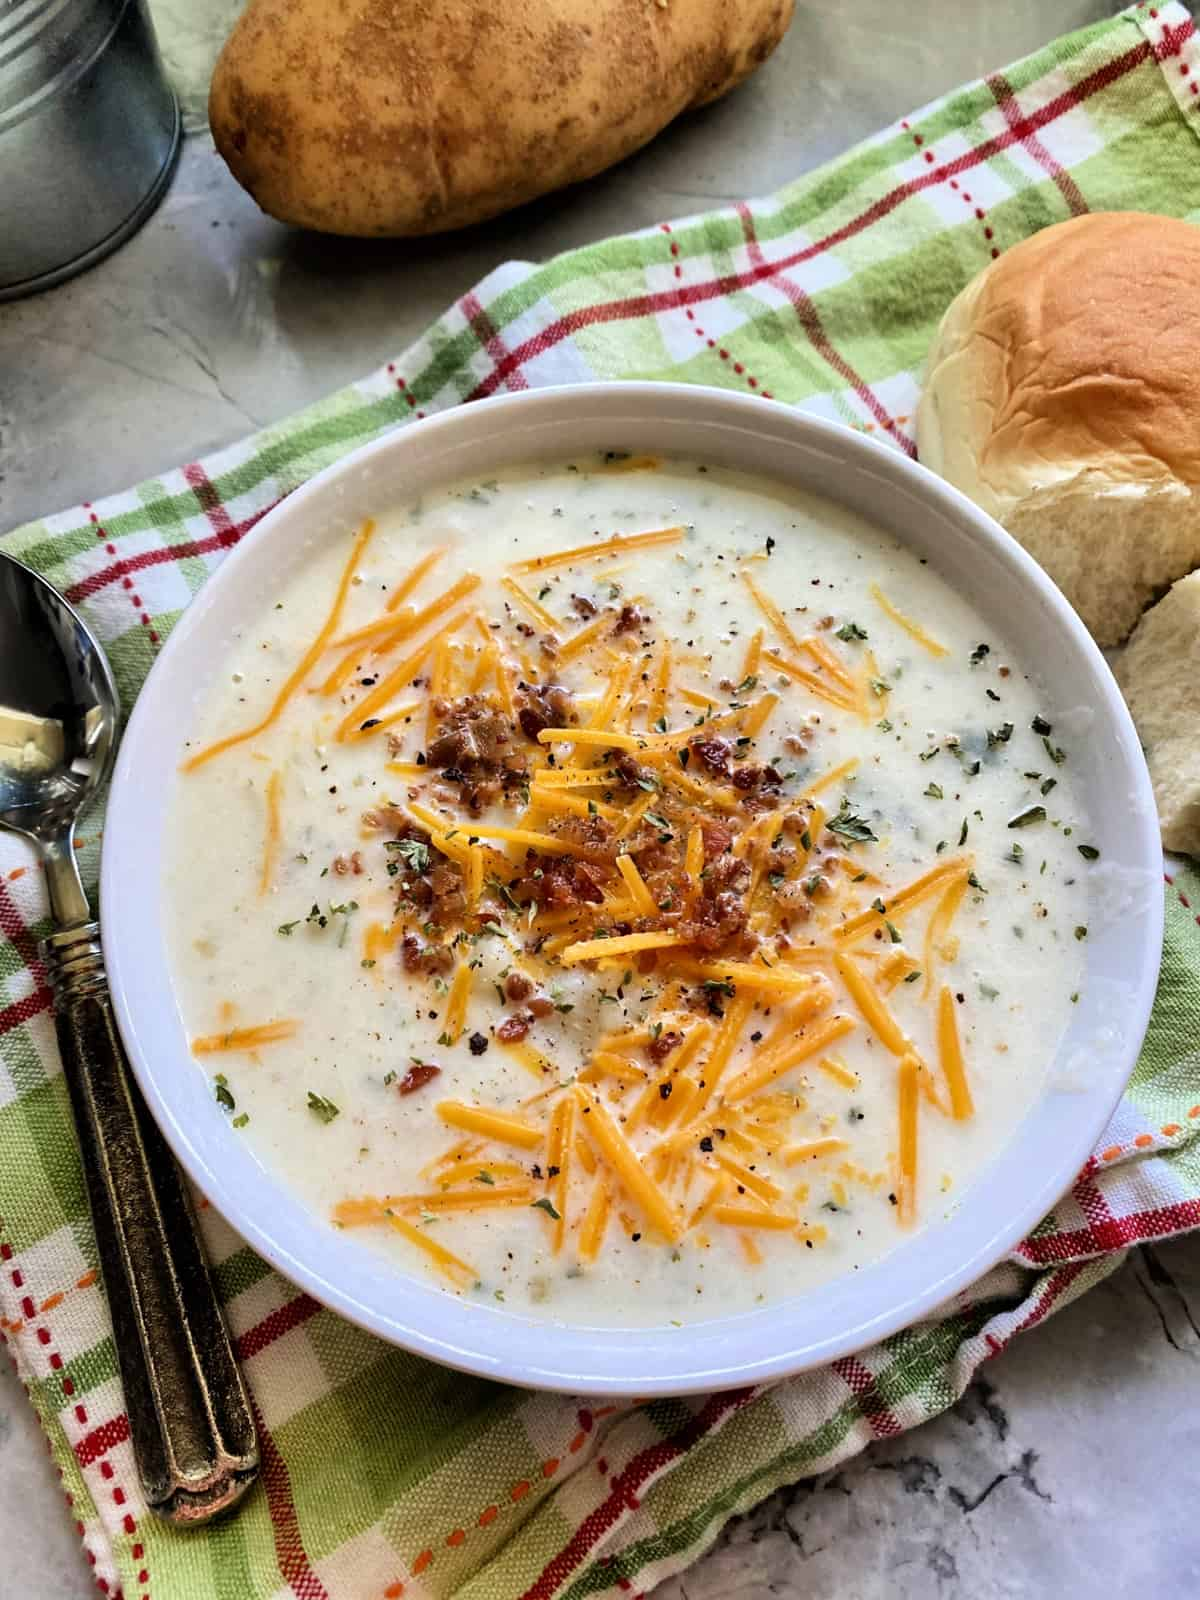 Top view of a bowl of mashed potato soup topped with bacon, cheese, and herbs.